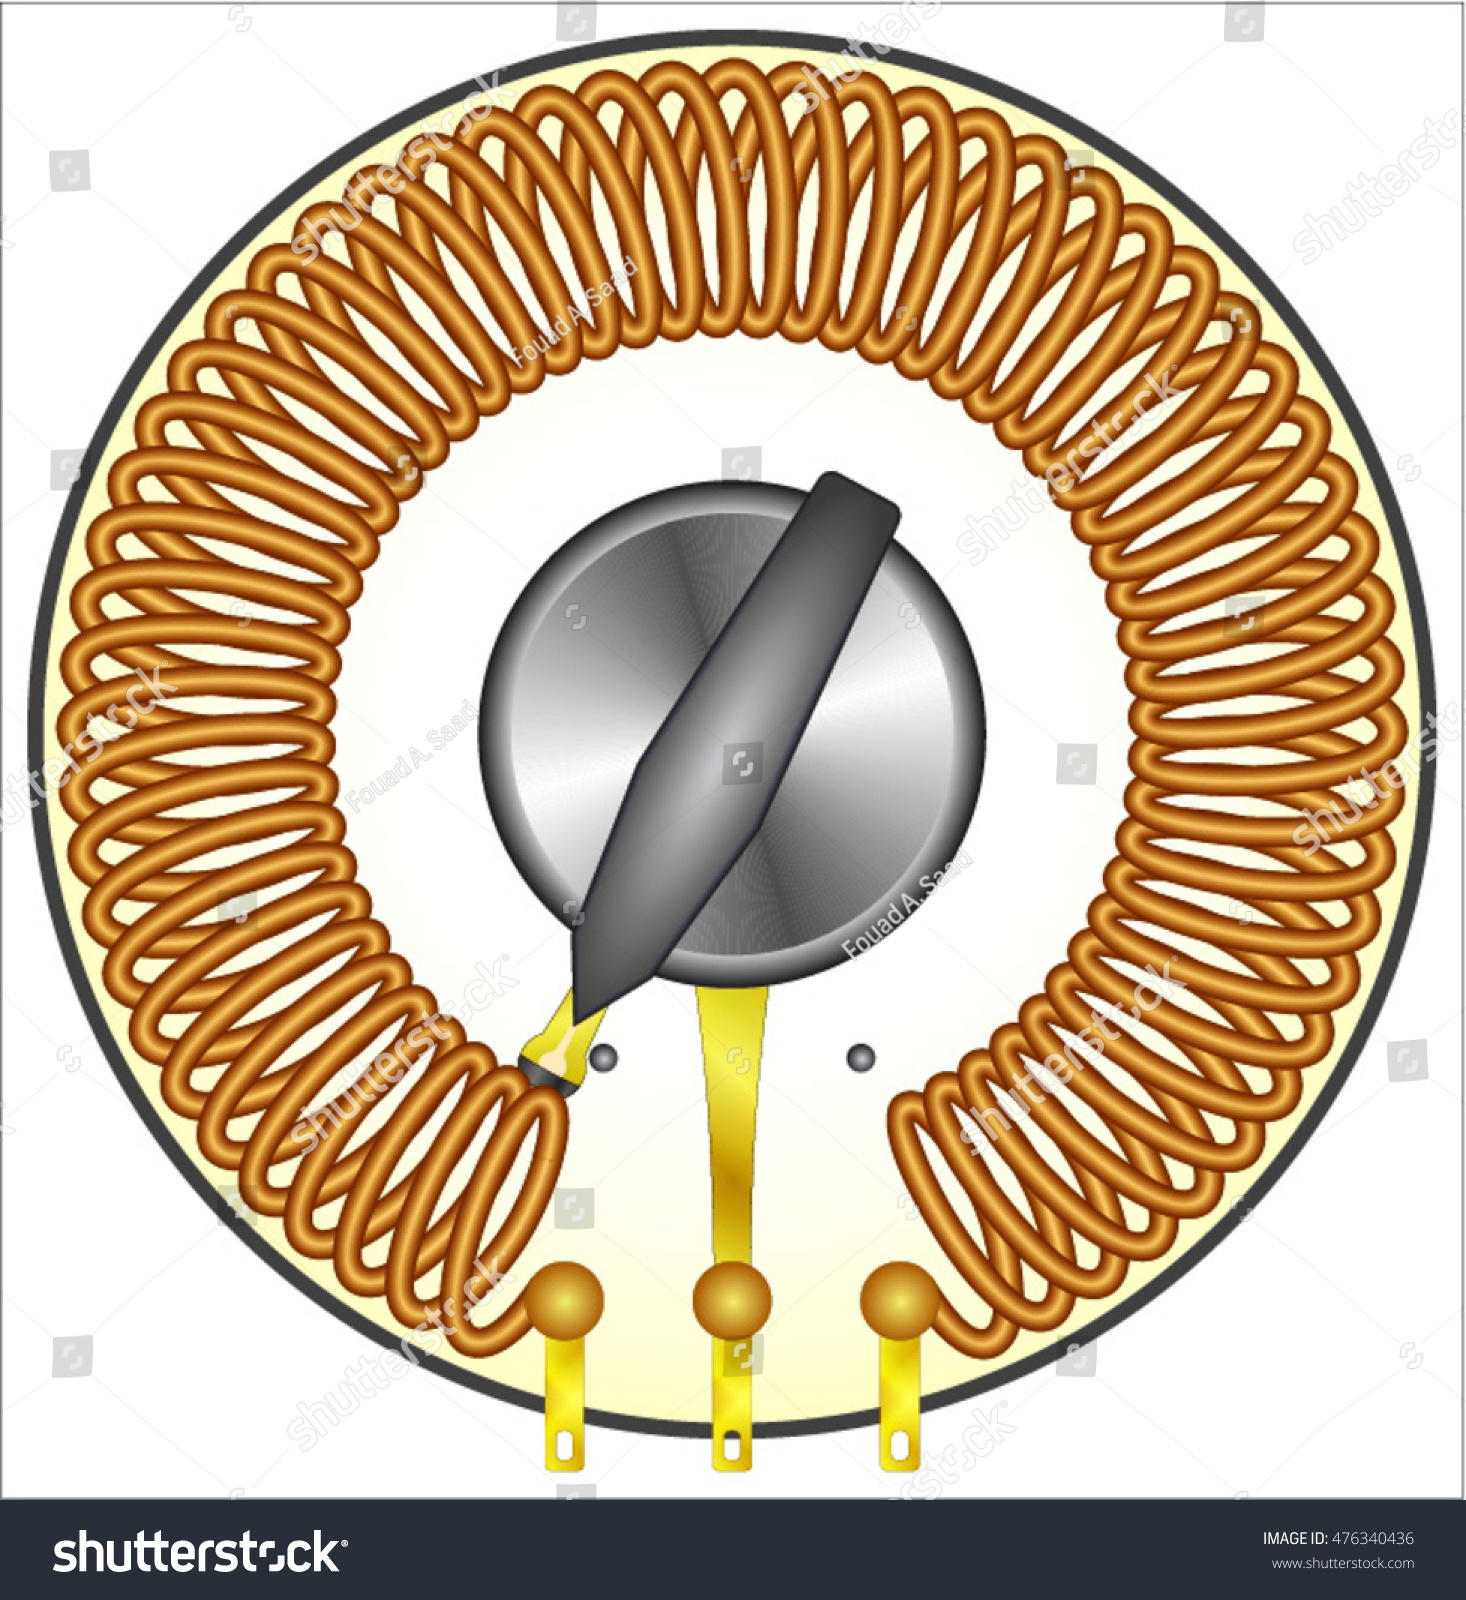 Variable Inductor Coil Air Core Stock Vector 476340436 - Shutterstock